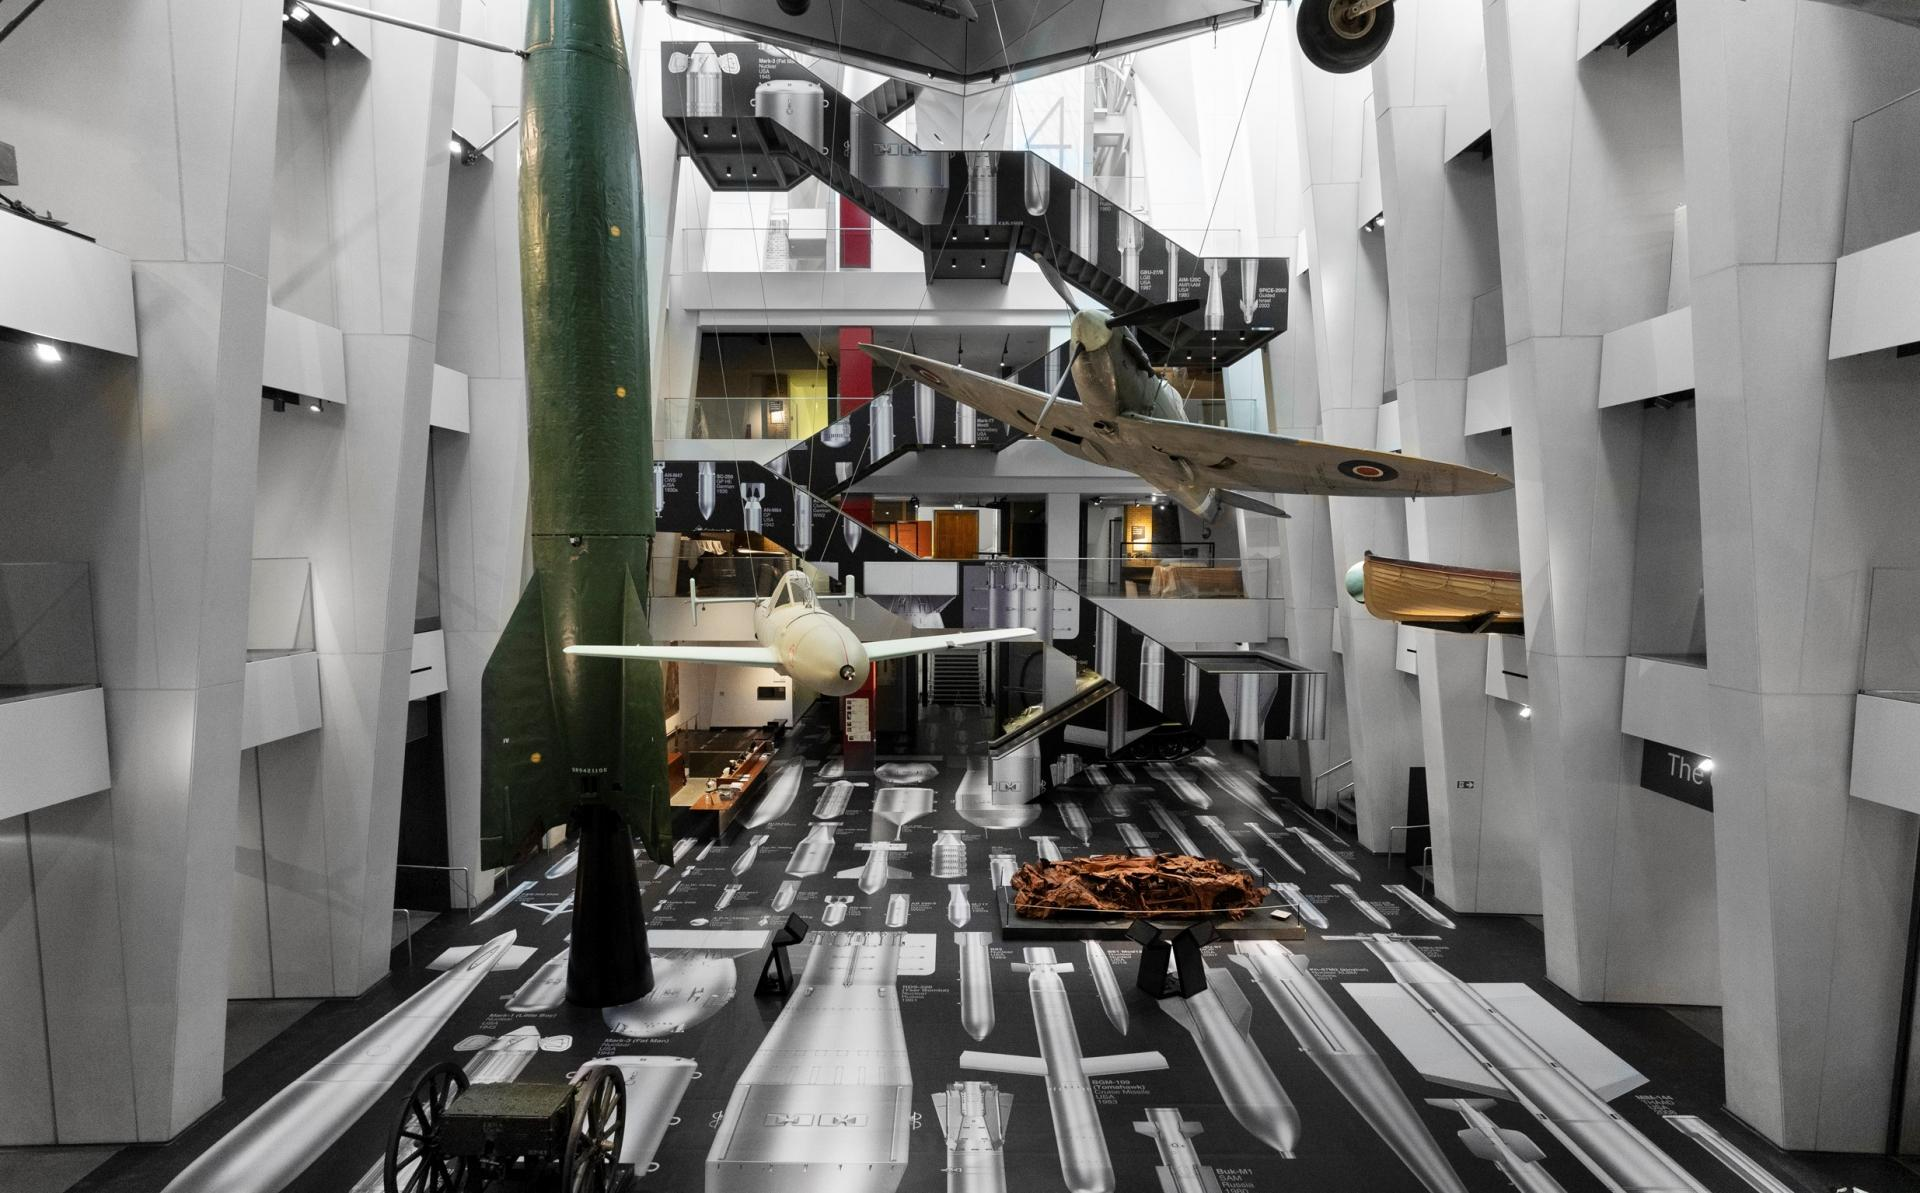 Atrium of IWM London featuring the artwork 'History of Bombs' by Ai Weiwei depicting the evolution of bomb design